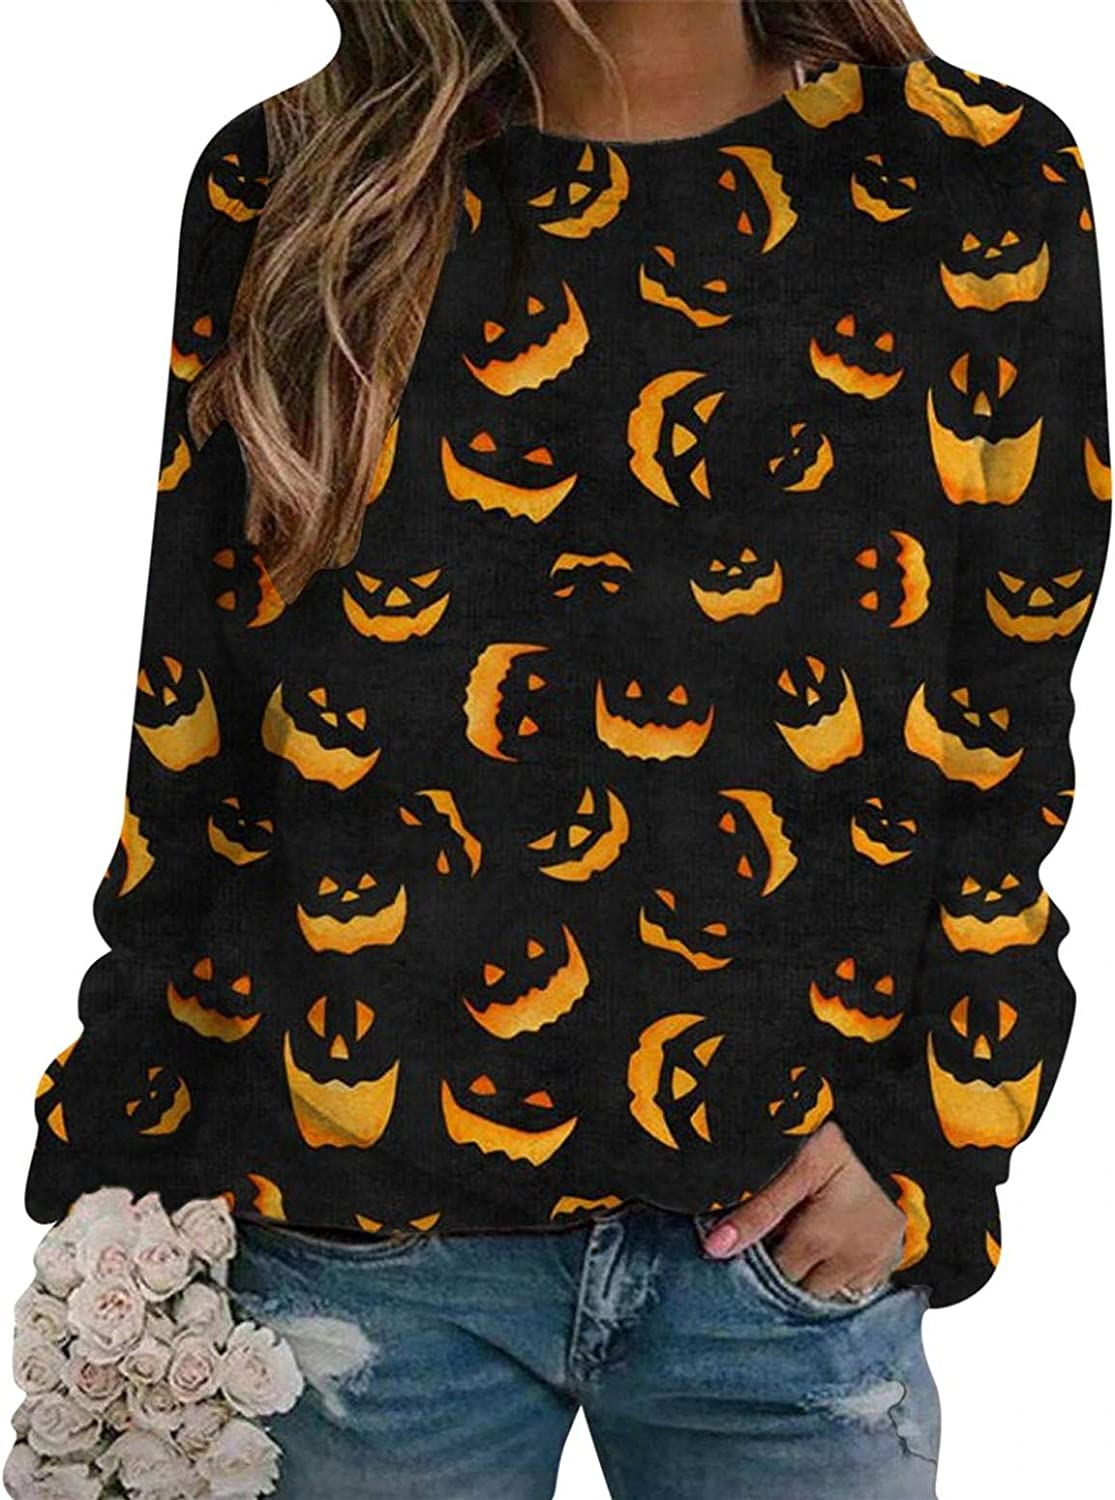 AODONG Halloween Sweatshirts for Womens Funny Pumpkin Graphic Sweatshirts Long Sleeves Pullover Blouse Tops